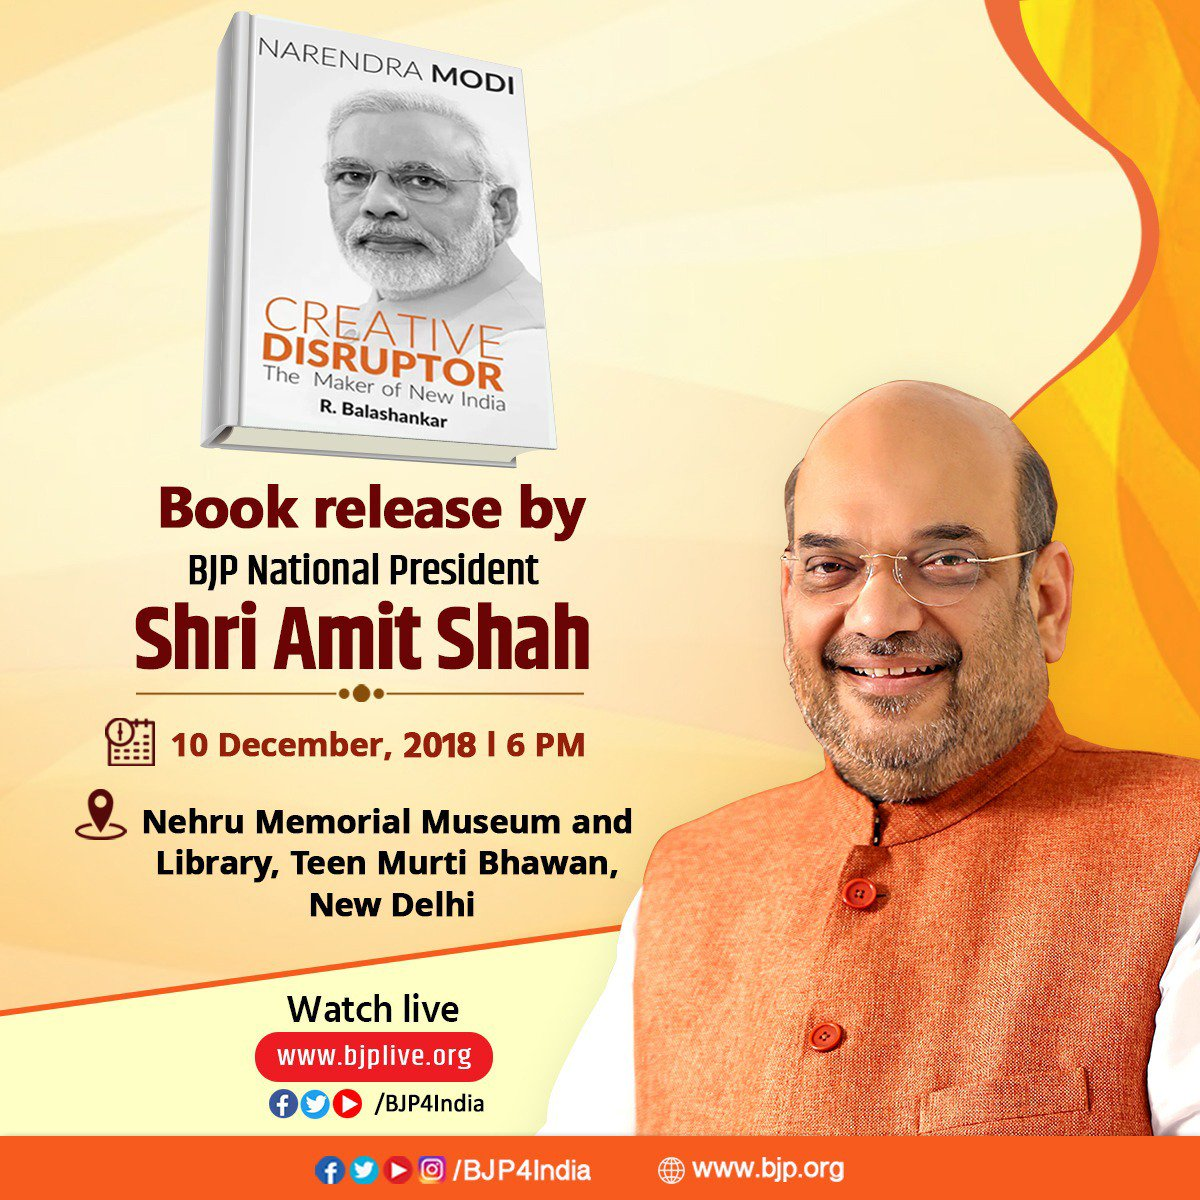 BJP National President Shri @AmitShah will release a book 'Narendra Modi: Creative Disruptor - The Maker of New India' at 6 pm today in New Delhi. Watch LIVE at https://t.co/vpP0MI6iTu and https://t.co/jtwD1yPhm4.